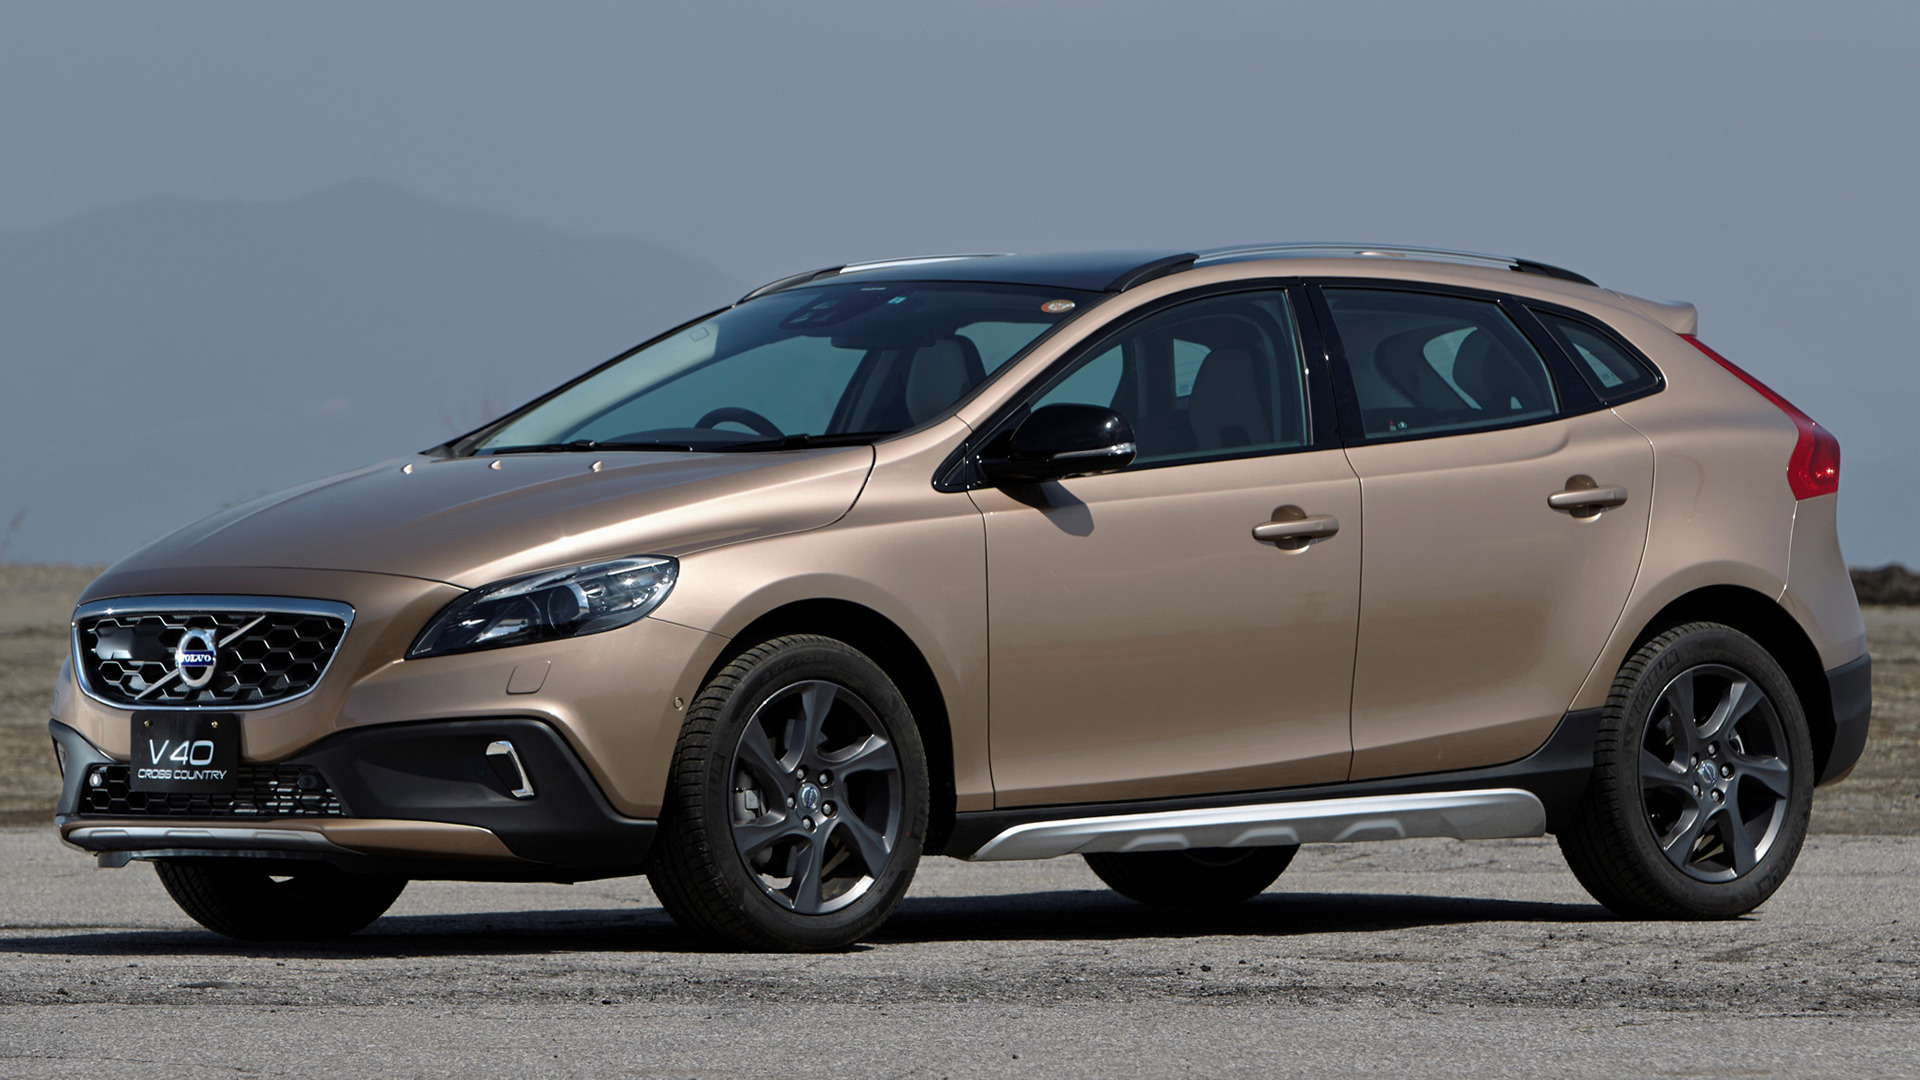 volvo v40 cross country 2013 jp wallpapers and hd images. Black Bedroom Furniture Sets. Home Design Ideas